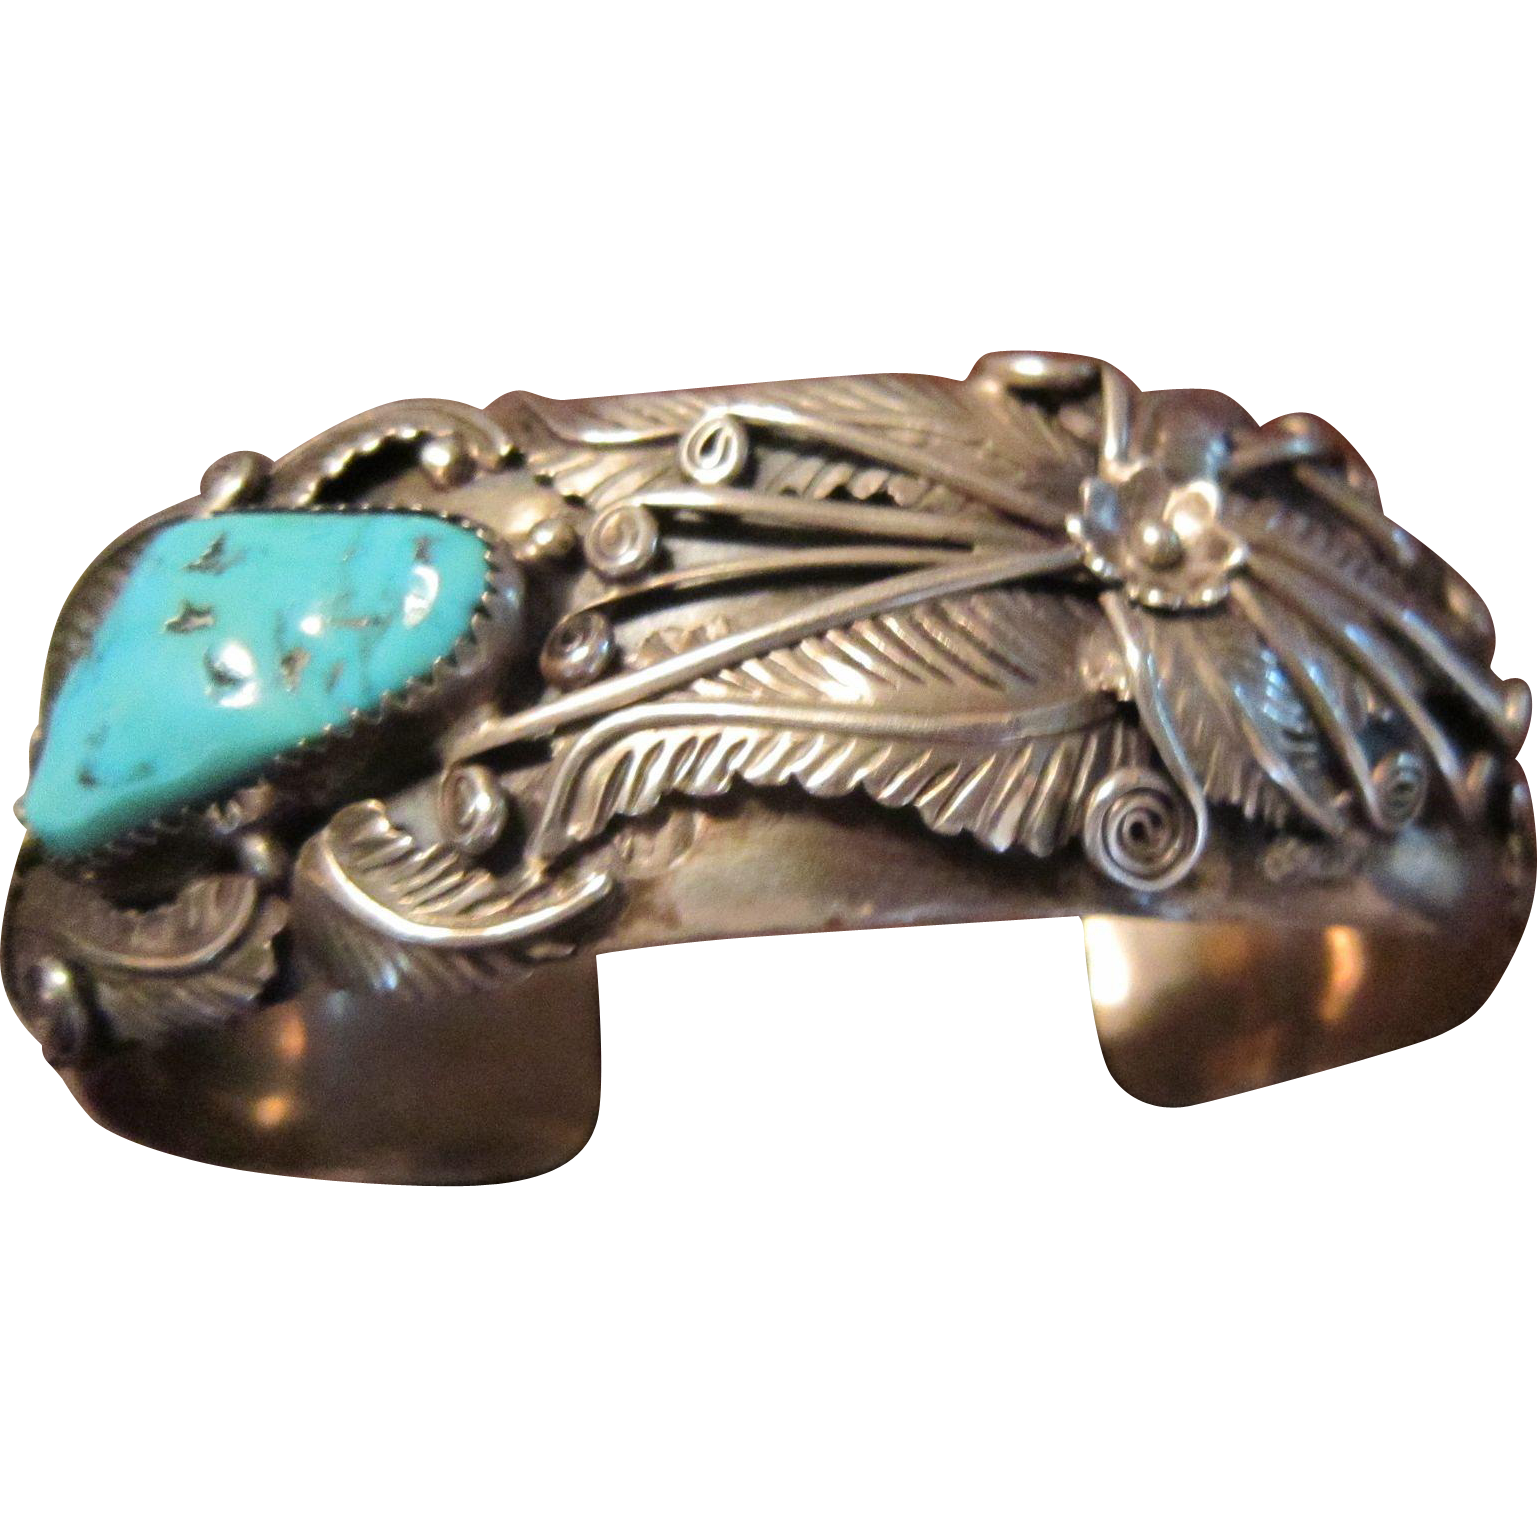 SALE $99 OFF: Large Wrist Navajo Foliate Sterling Cuff Bracelet